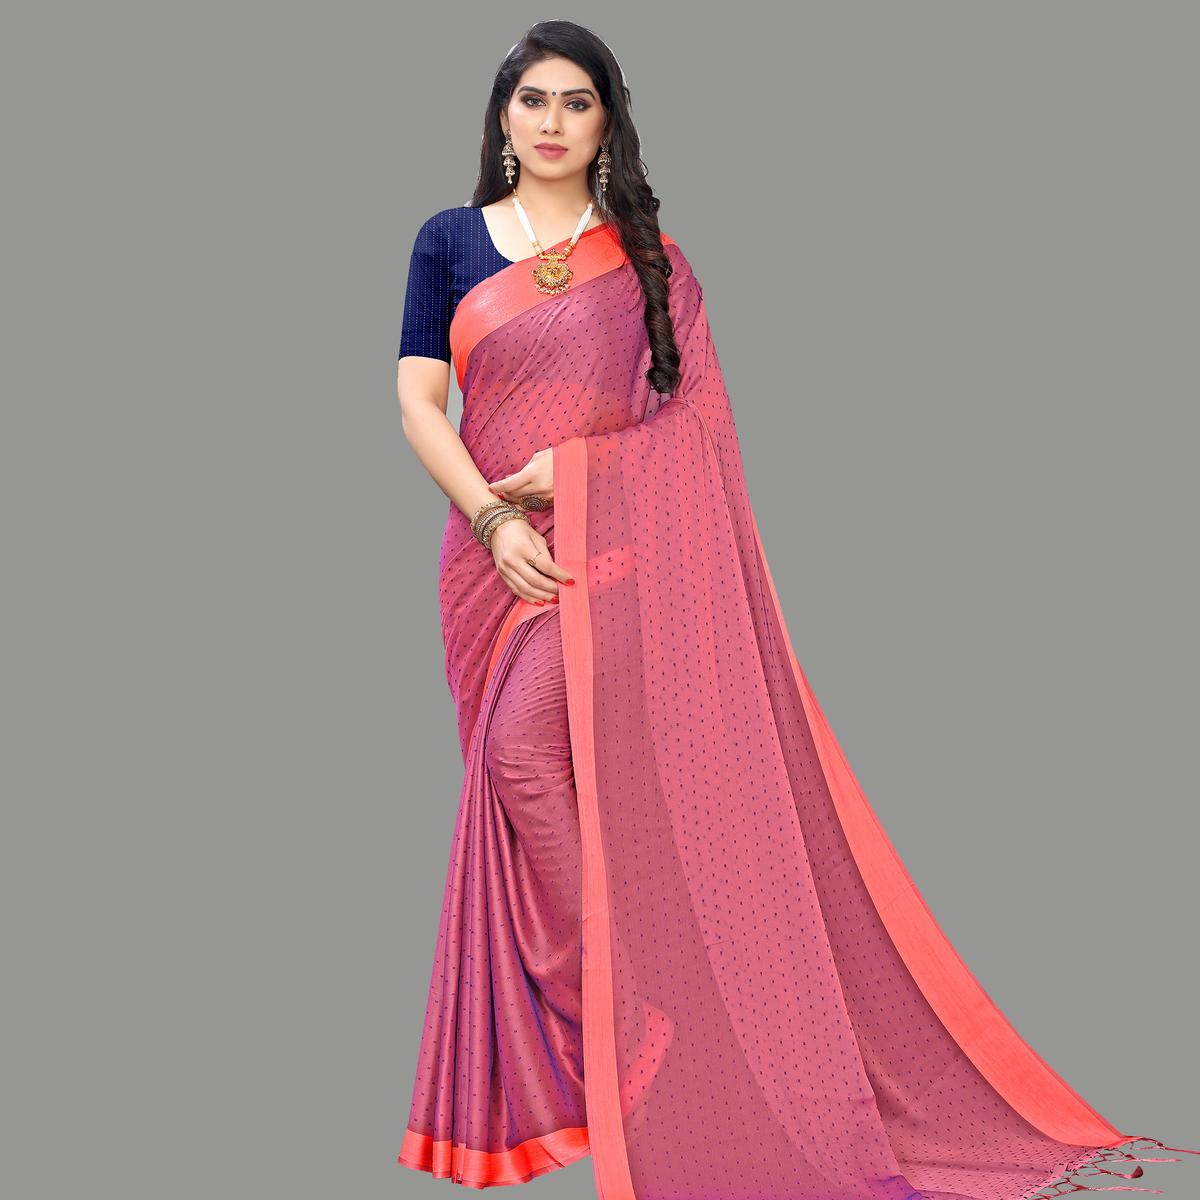 Impressive Mauve Colored Party Wear Printed Poly Georgette Saree With Tassels